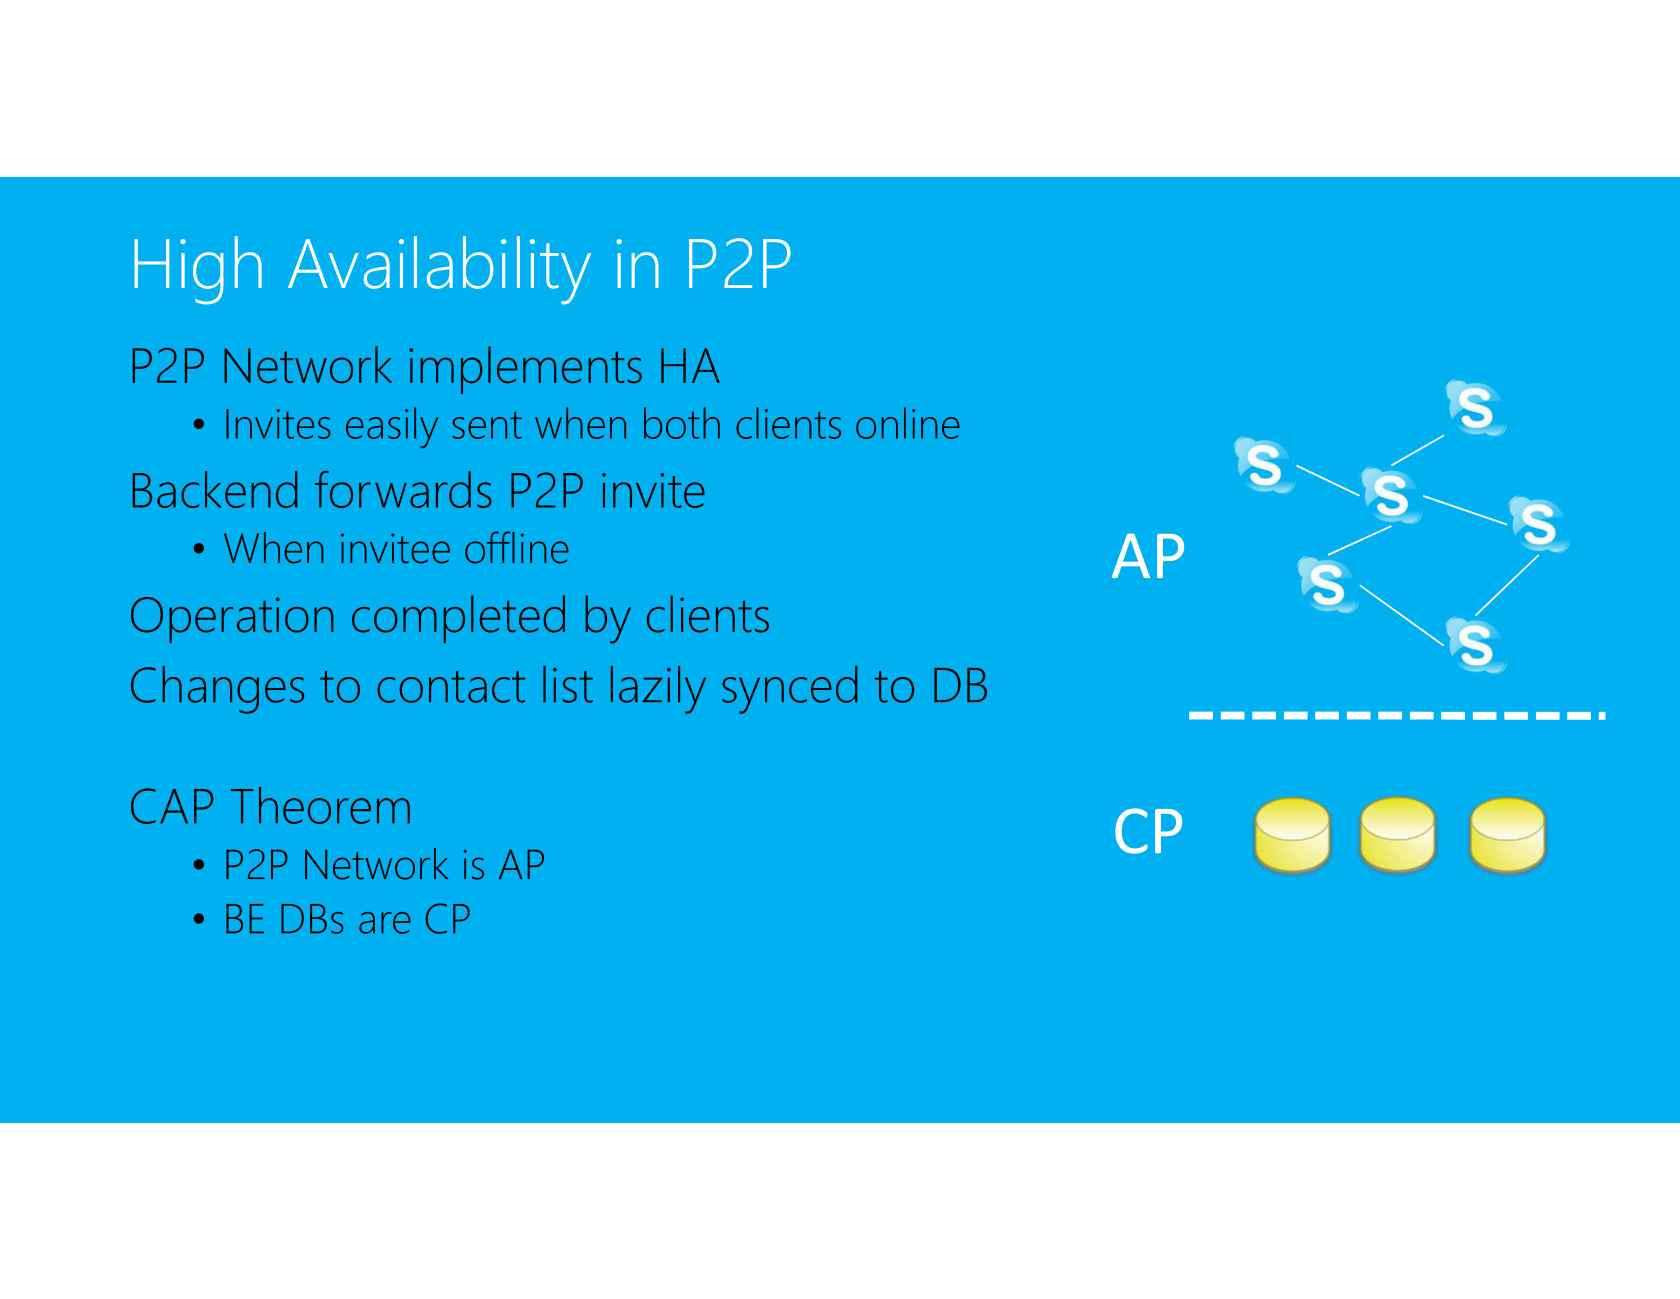 Skype's Journey from P2P: It's Not Just about the Services